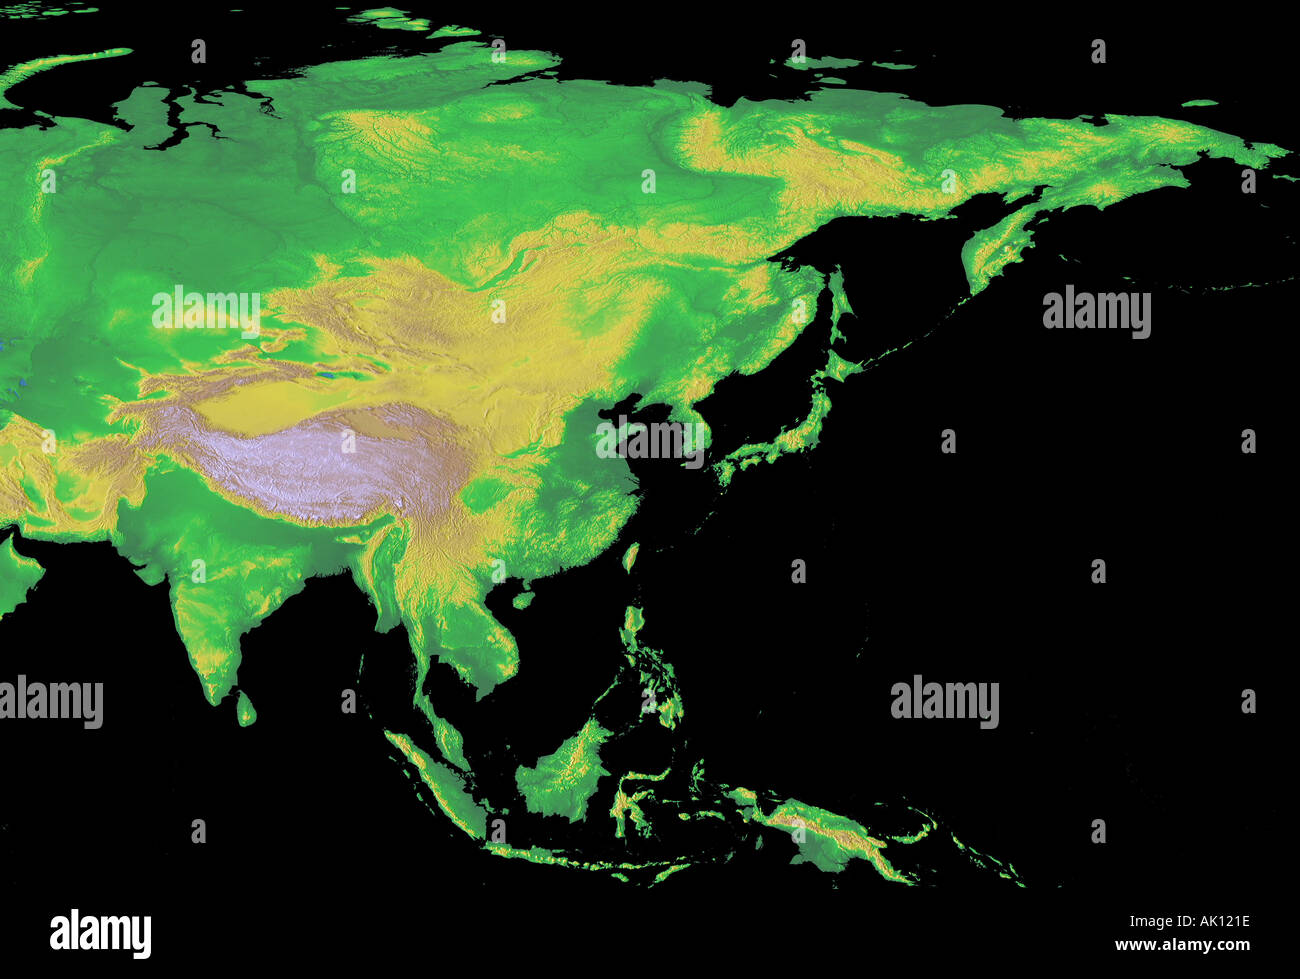 Digital elevation map of asia earth from space stock photo 1249821 digital elevation map of asia earth from space gumiabroncs Choice Image